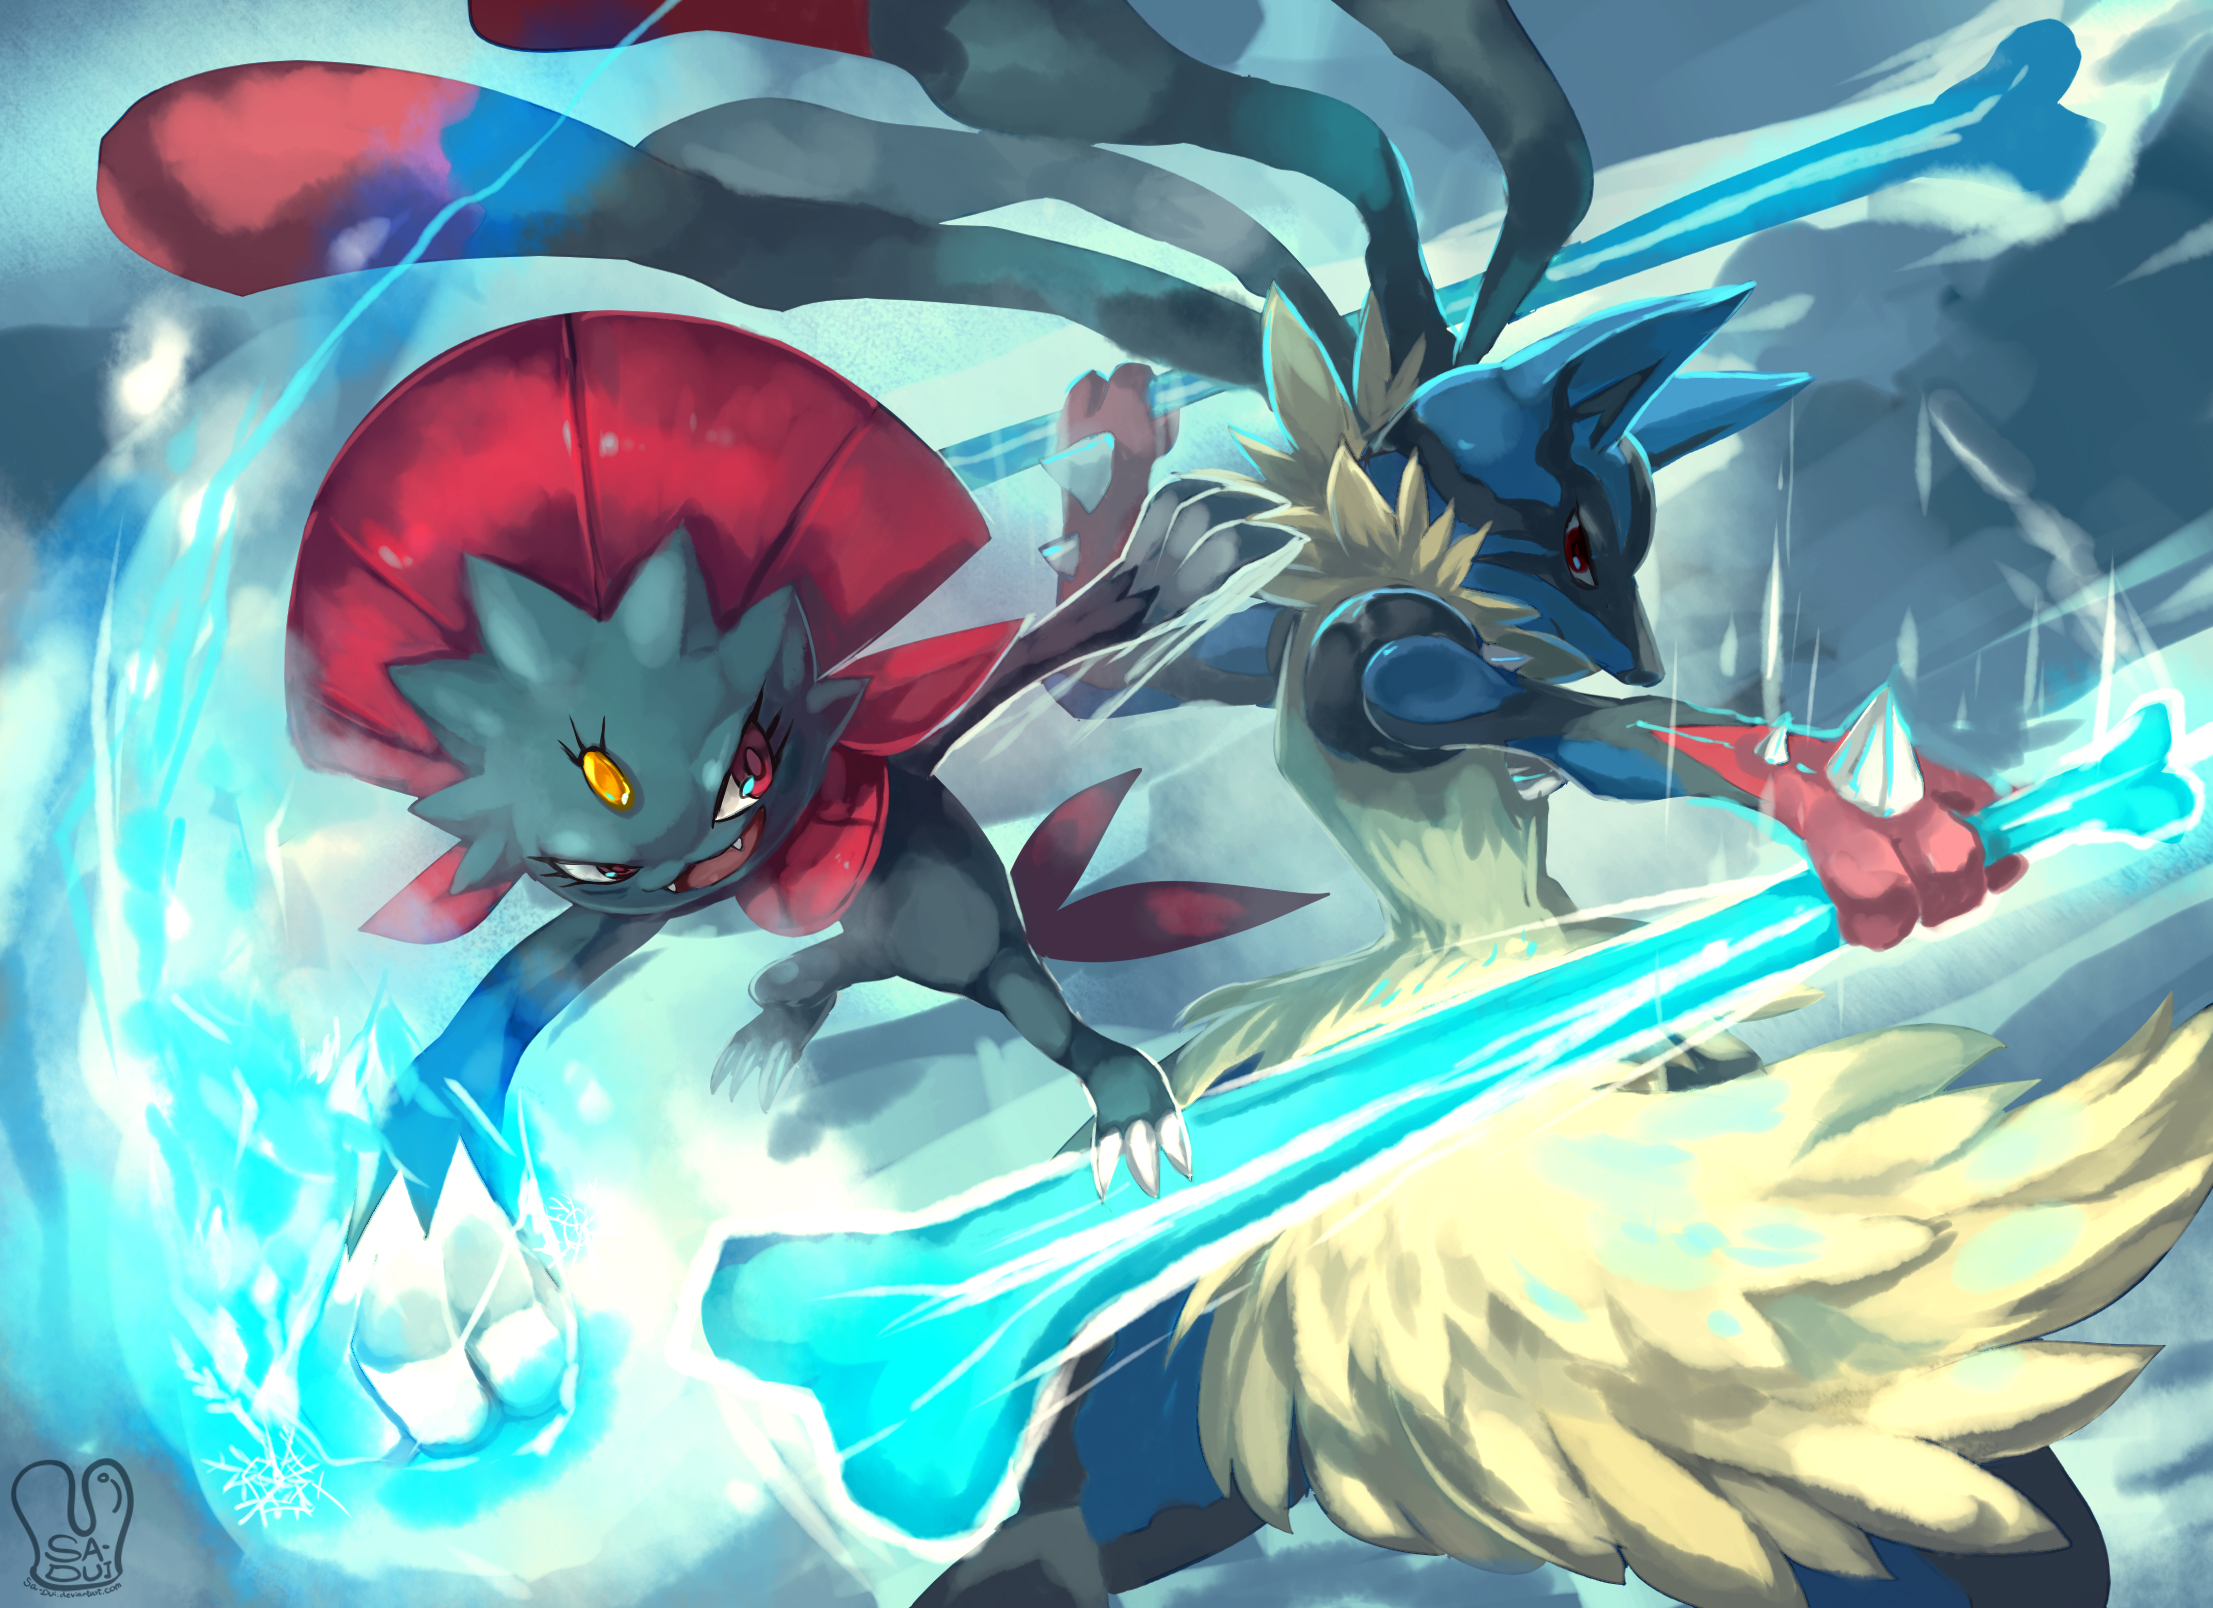 Download Mega Lucario wallpapers to your cell phone - games ...